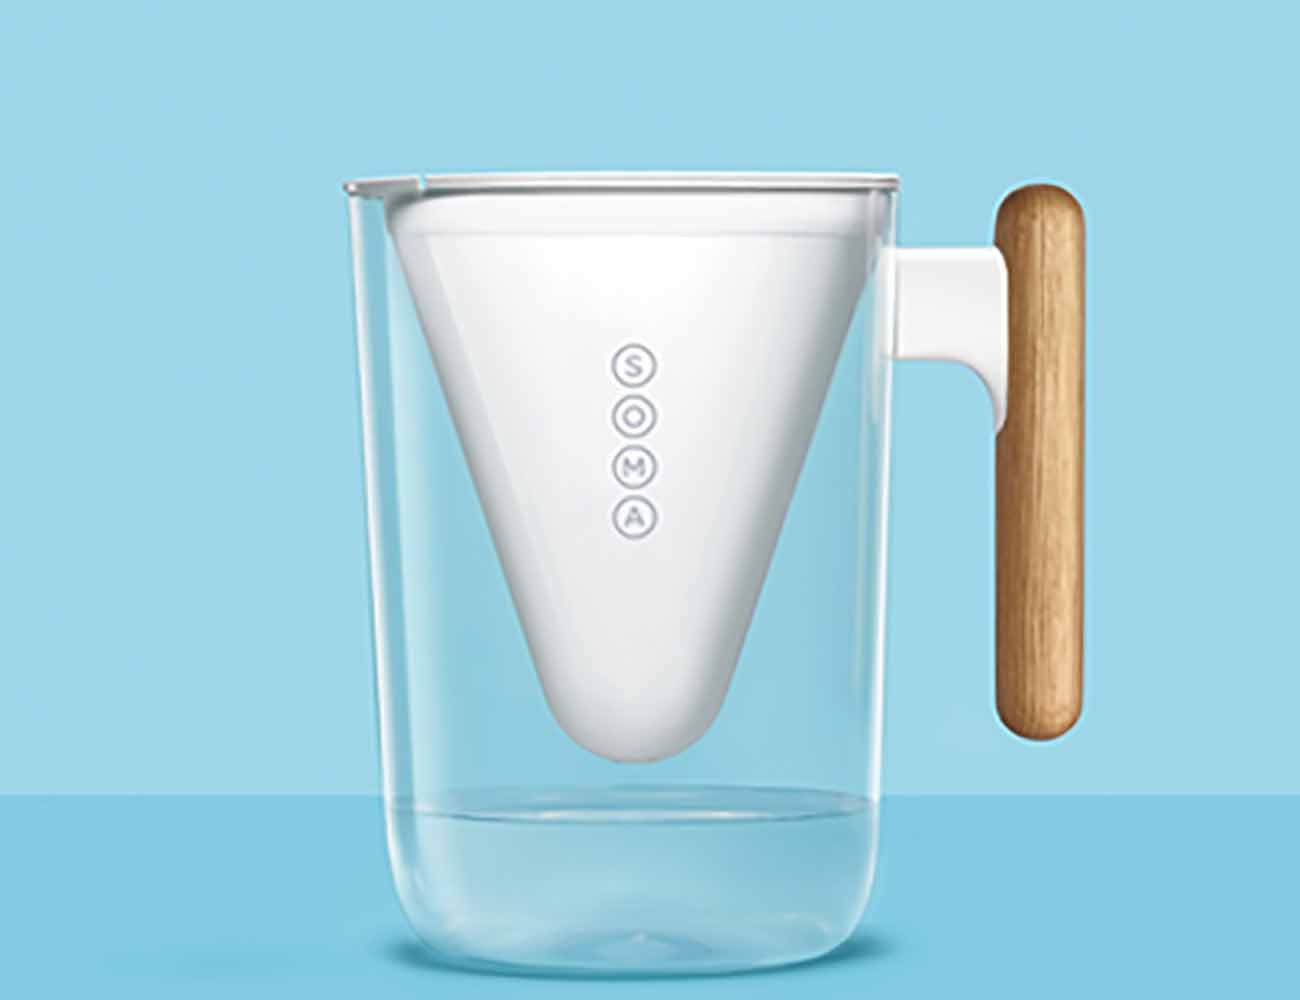 Soma Sustainable Pitcher Amp Plant Based Water Filter